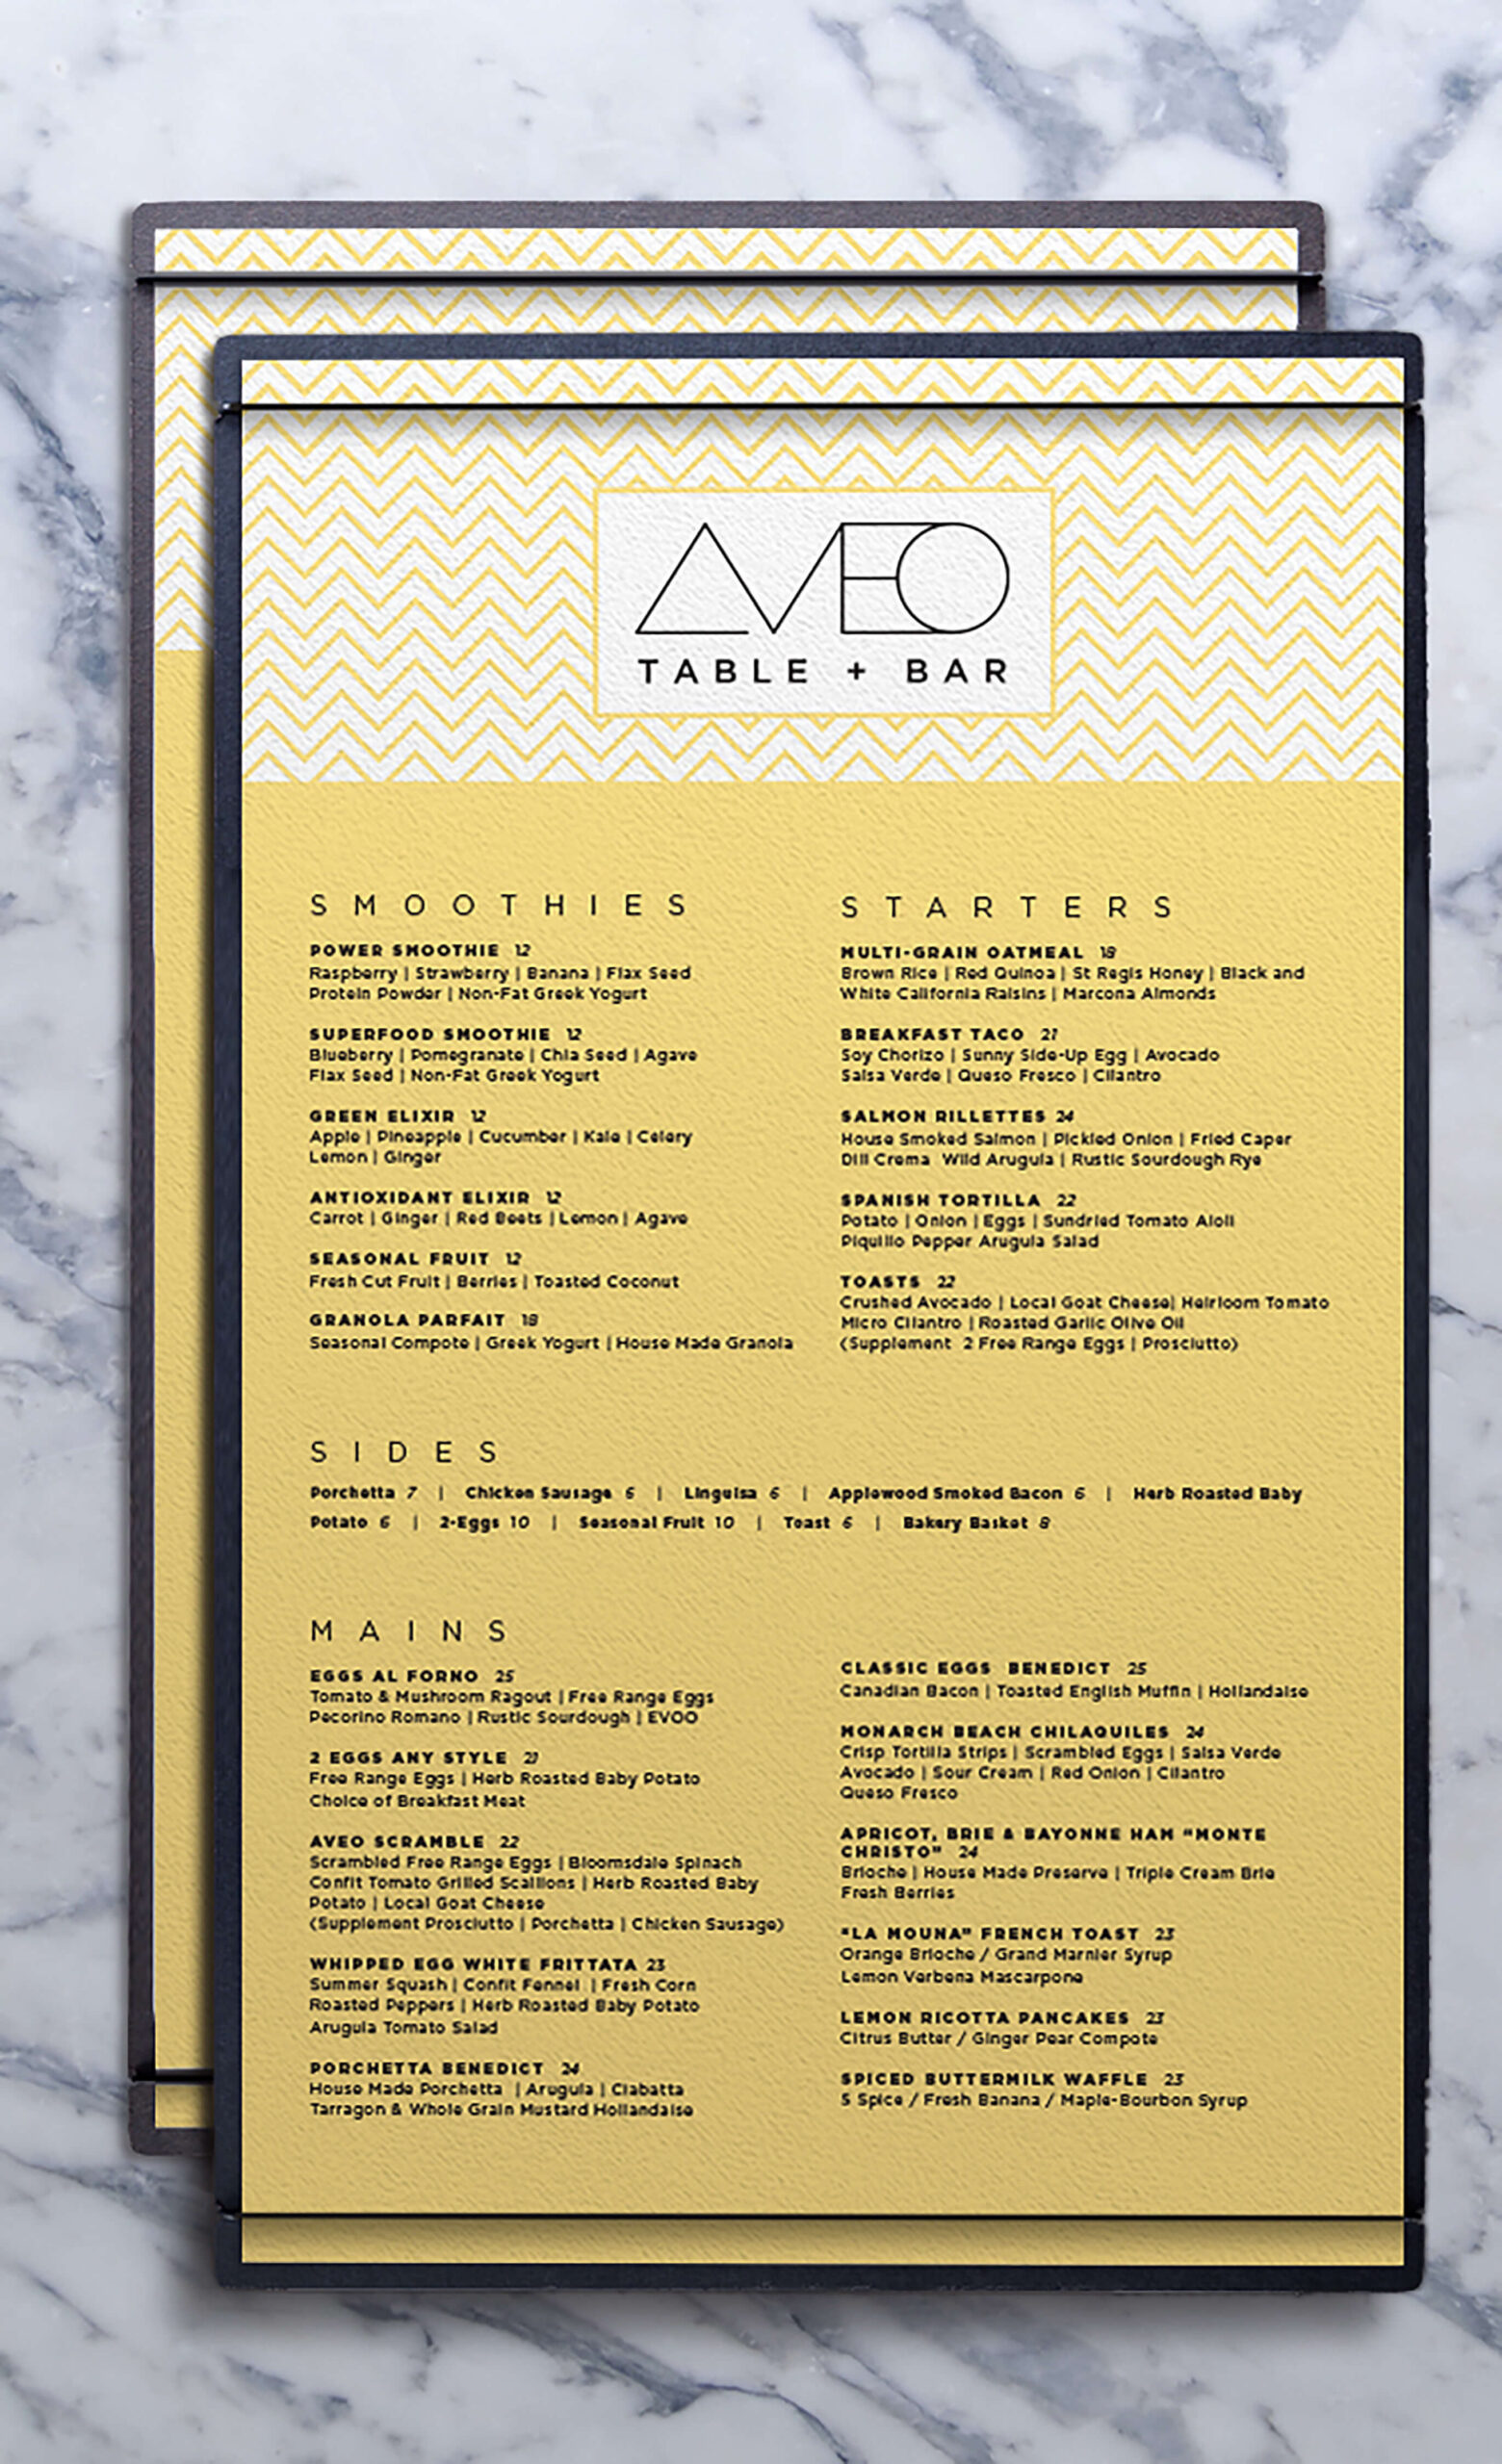 RBS_St_Regis_Monarch_Beach_Menu_01